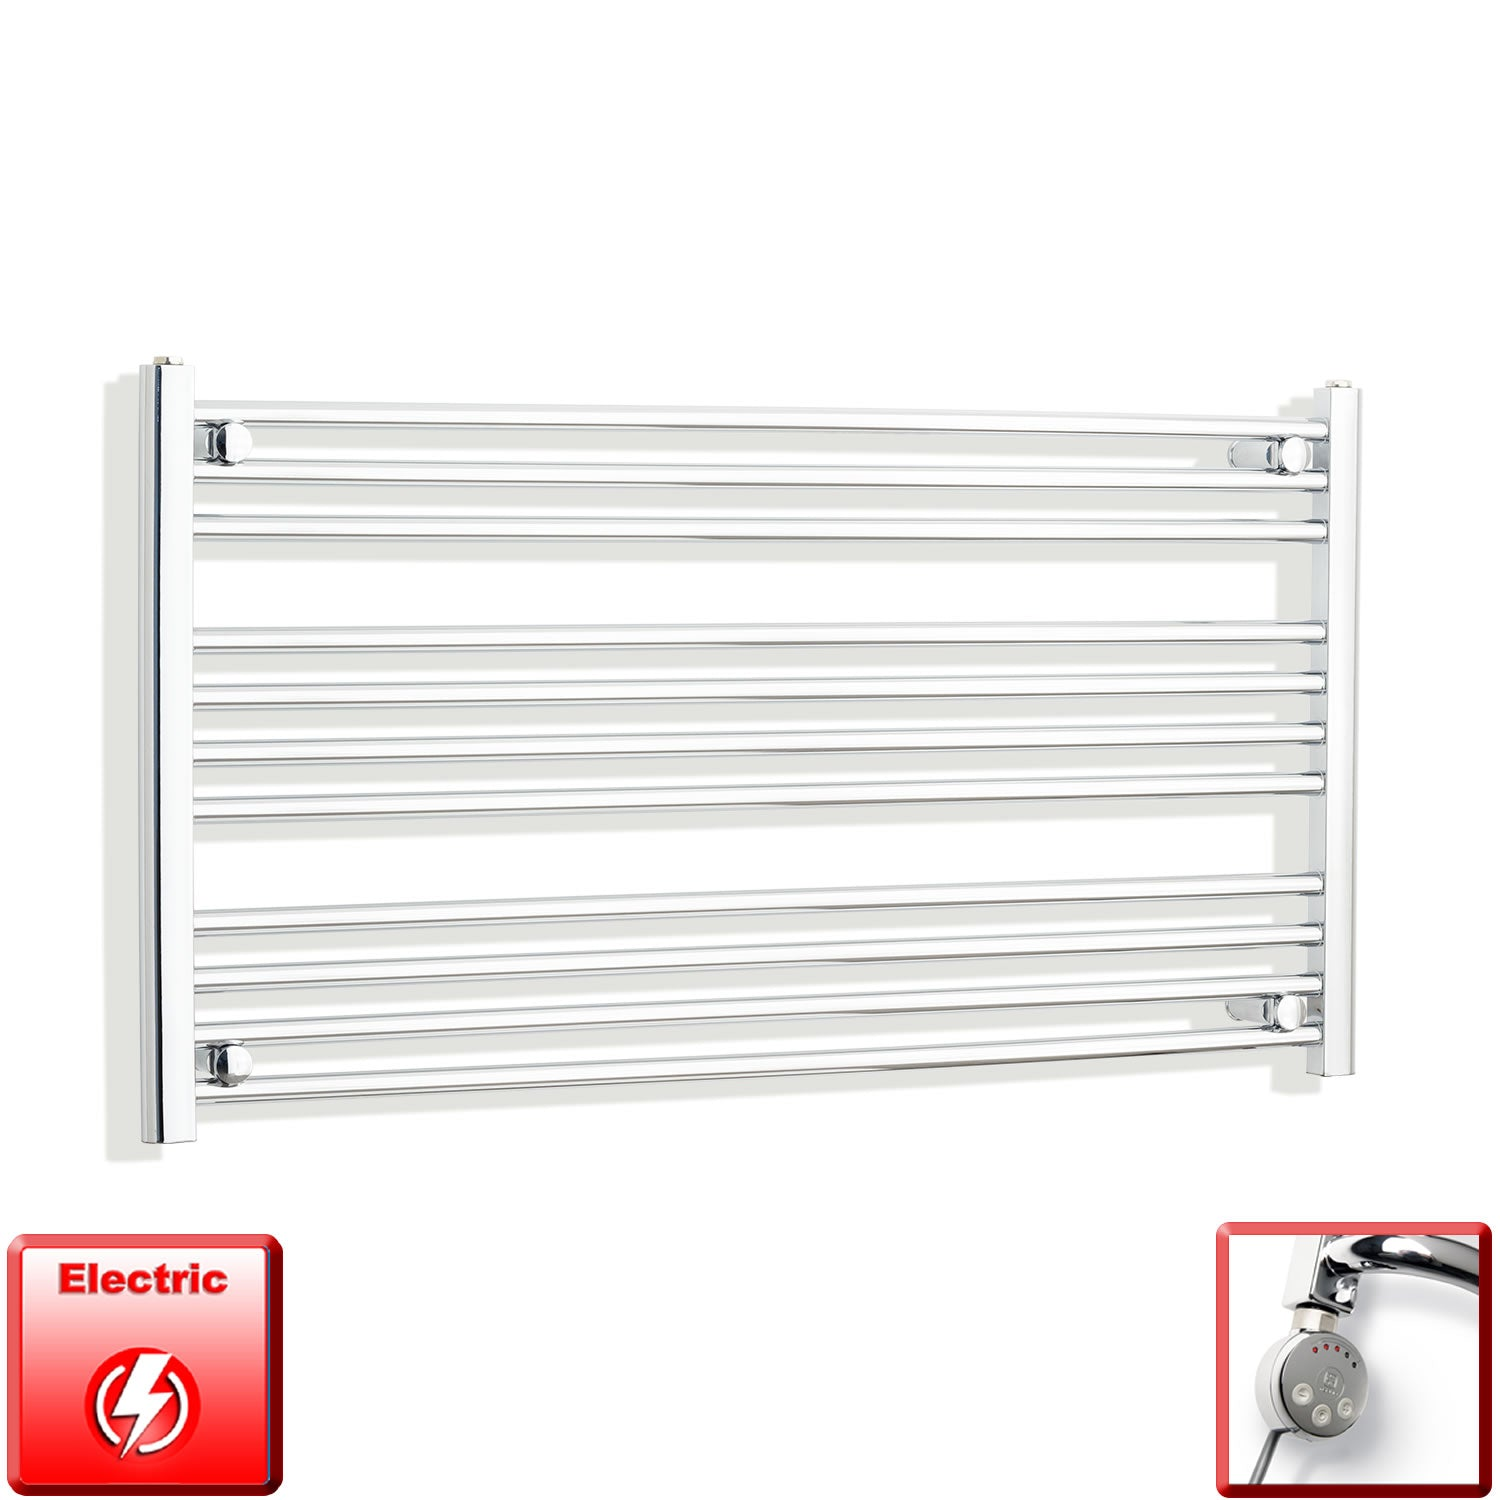 1300mm Wide 600mm High Flat Chrome Pre-Filled Electric Heated Towel Rail Radiator HTR,MEG Thermostatic Element